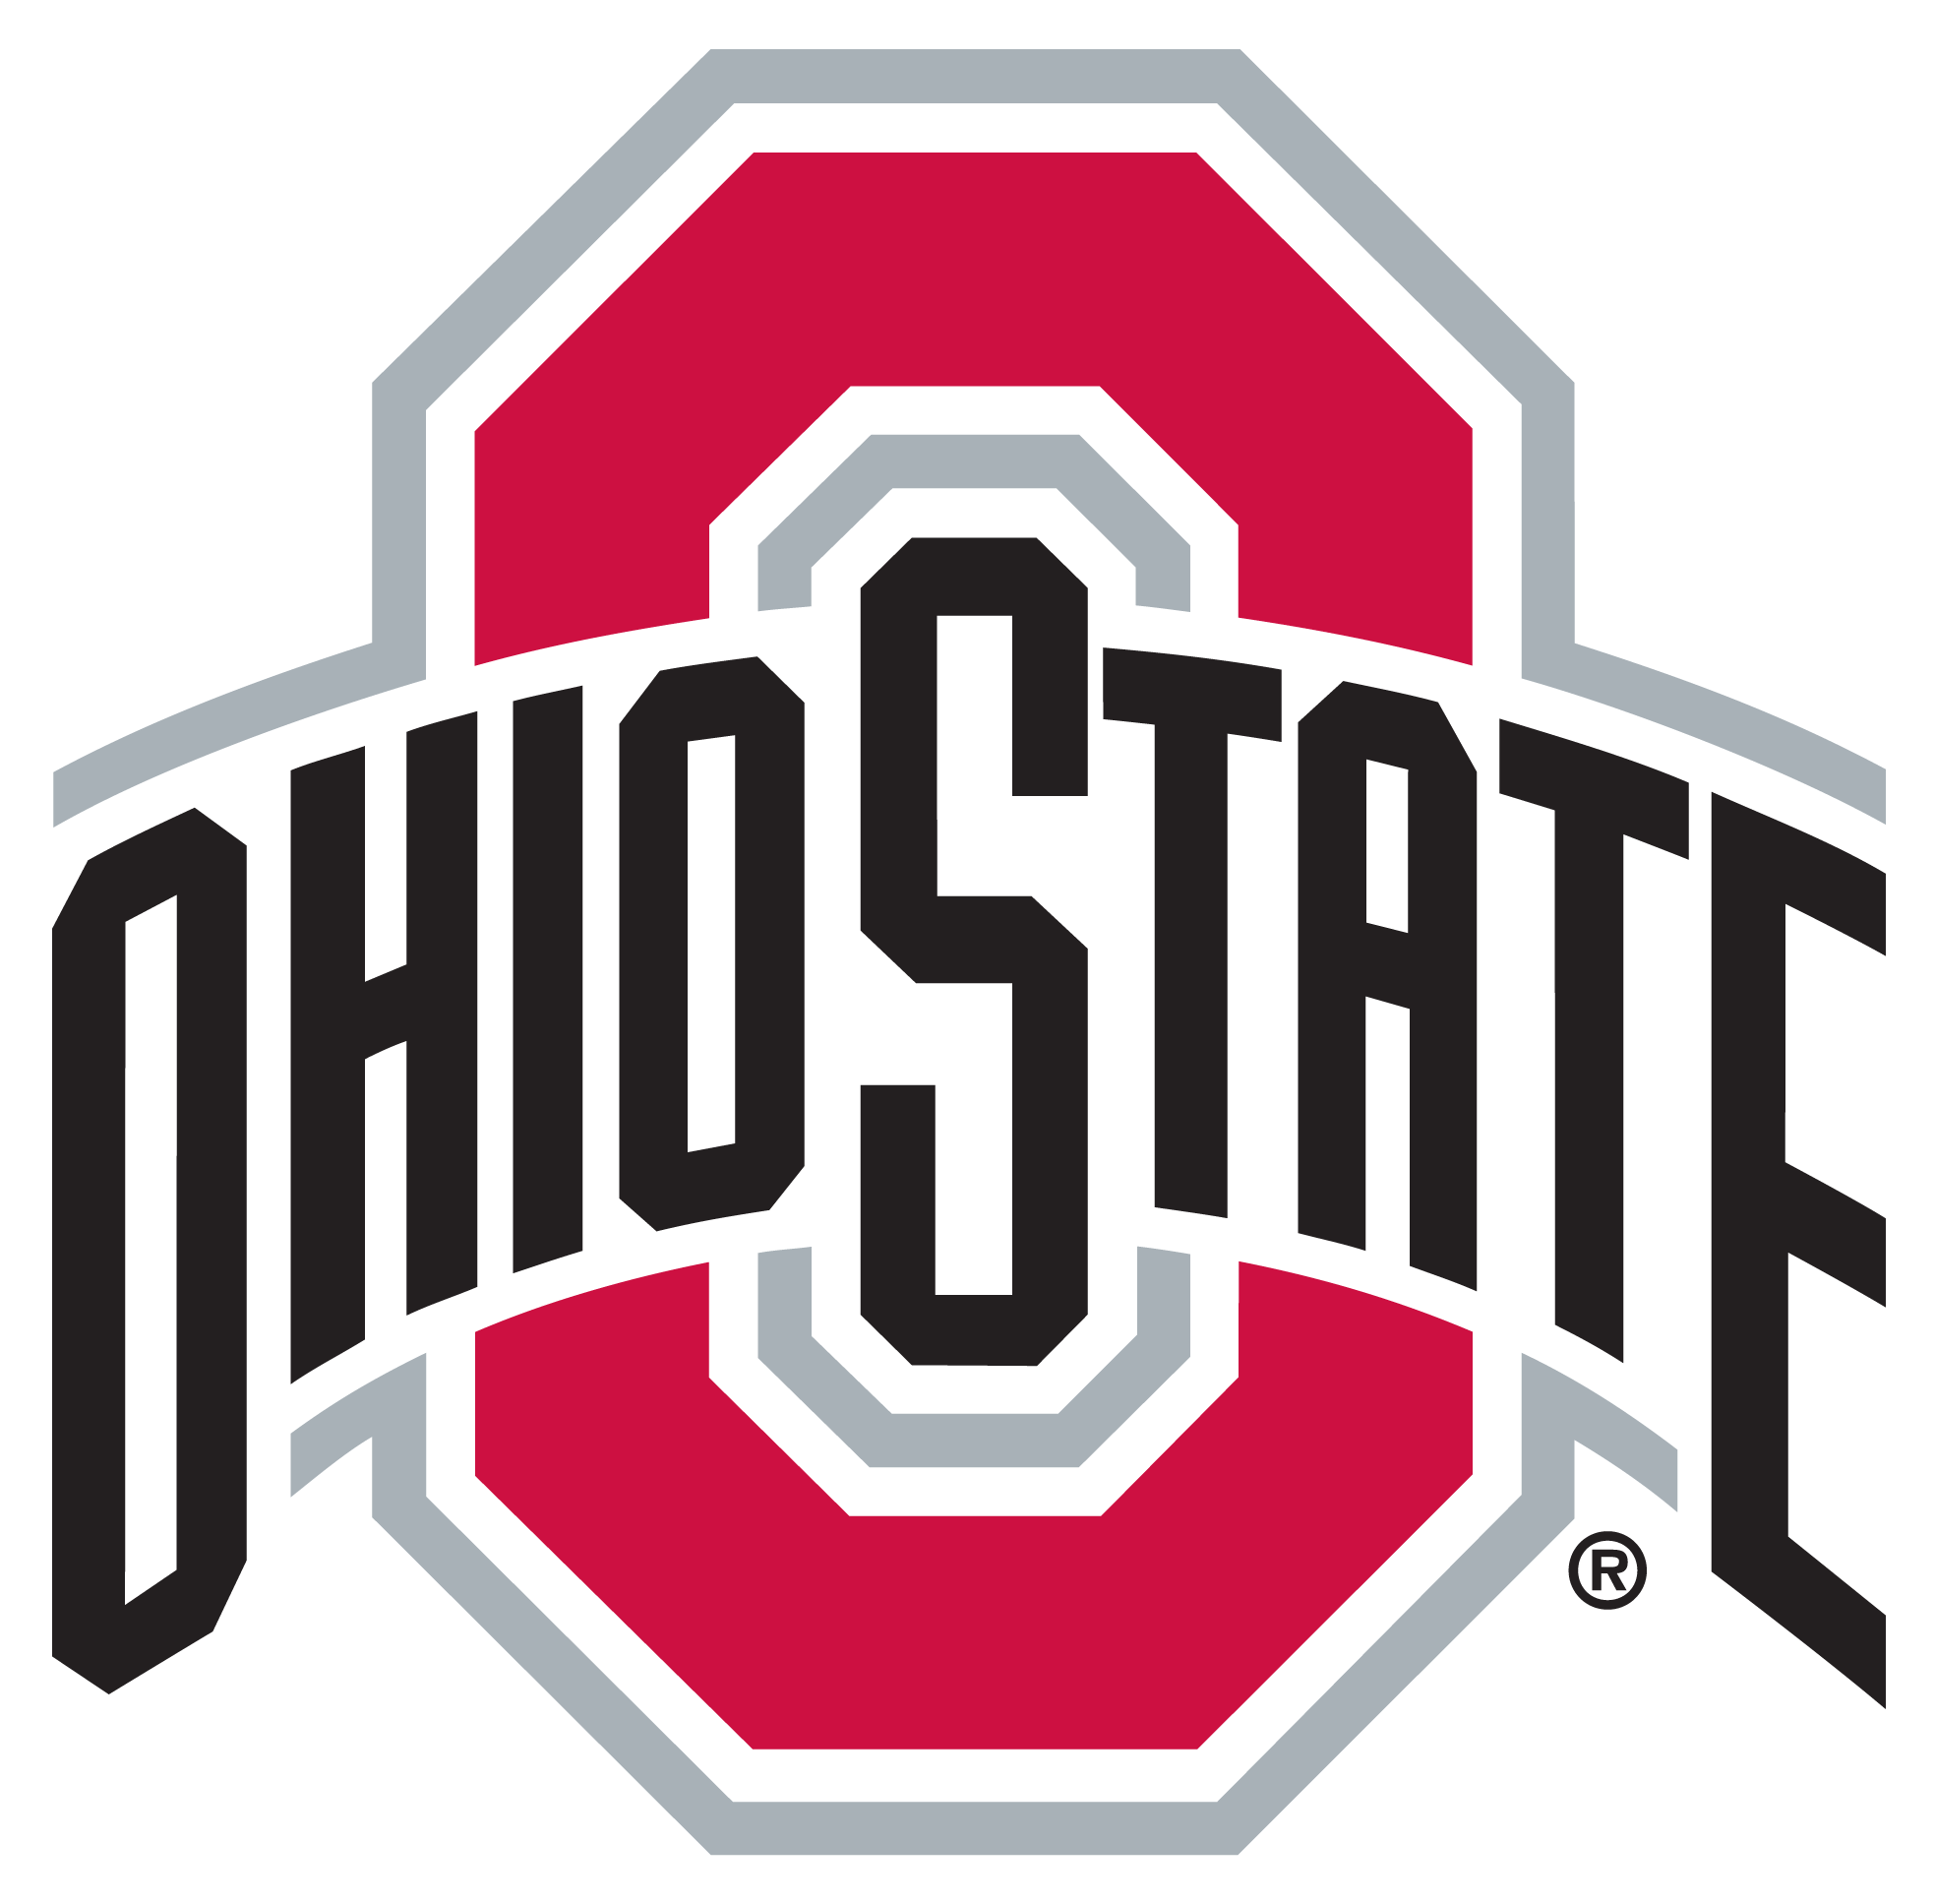 use ohio state emojis to root for the